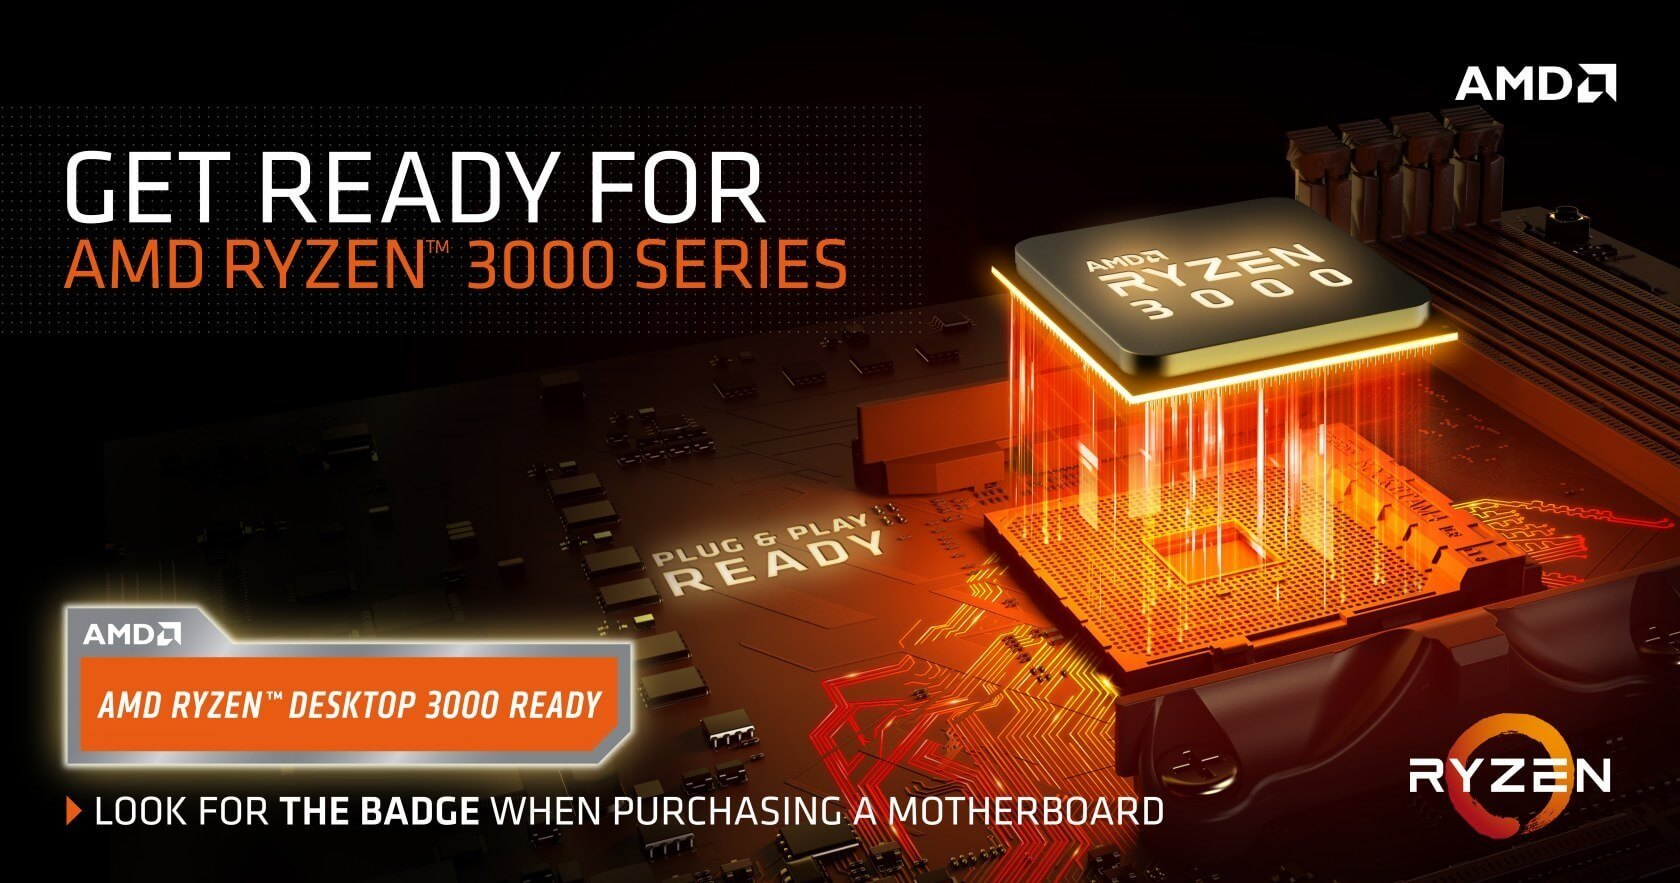 Amd Assures Ryzen 3000 Will Perform Equally Across B450 X470 And X570